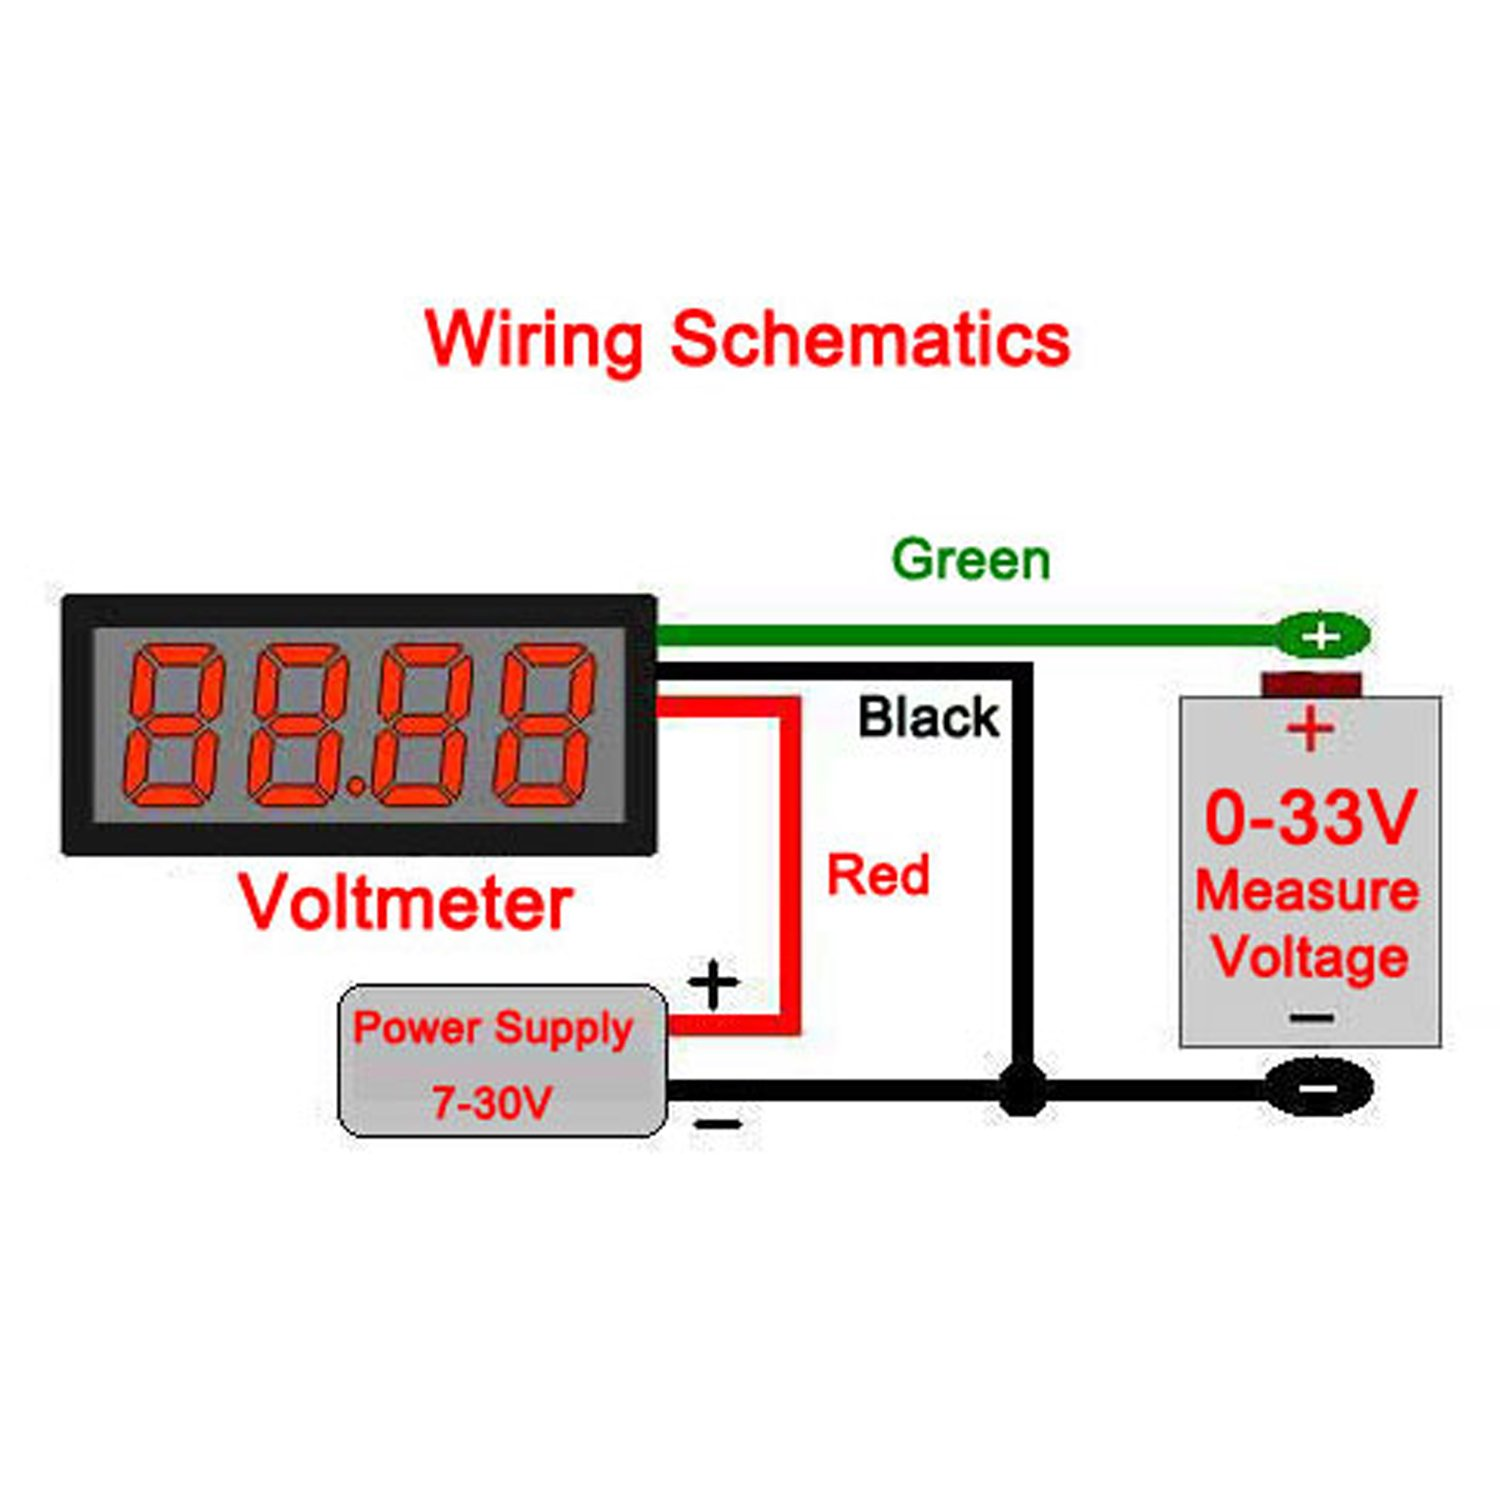 wiring voltmeter motorcycle wiring diagram news u2022 rh lomond tw Automotive Voltmeter Wiring -Diagram Ammeter Gauge Wiring Diagram